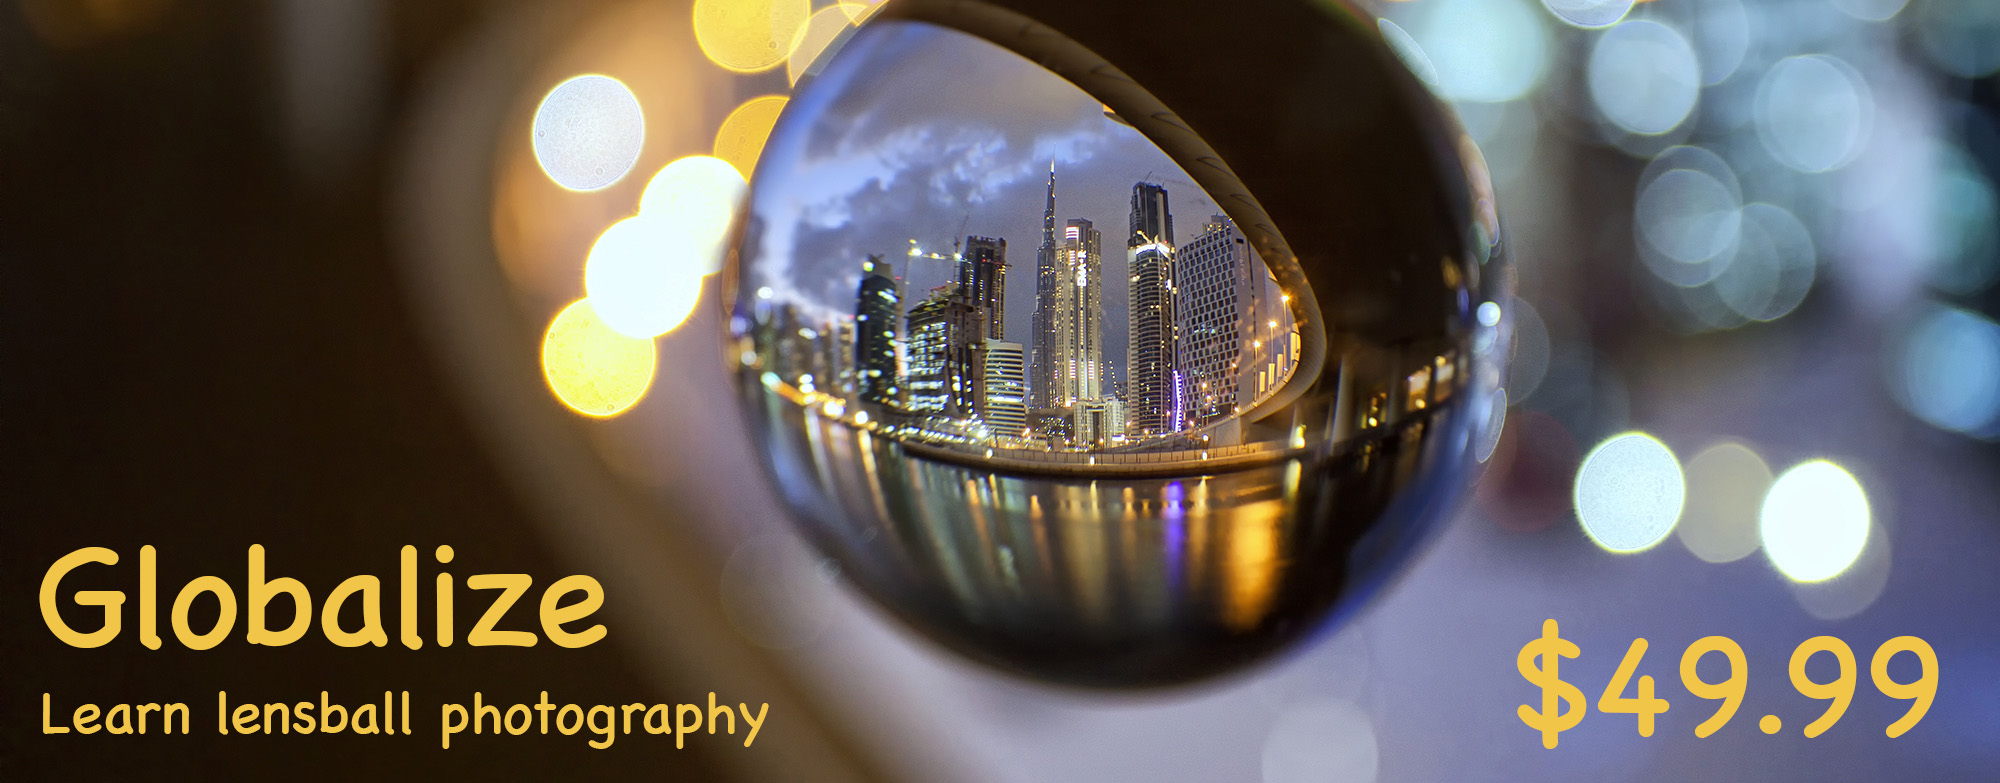 Globalise is a lensball photography tutorial, full of tips to take better photos.